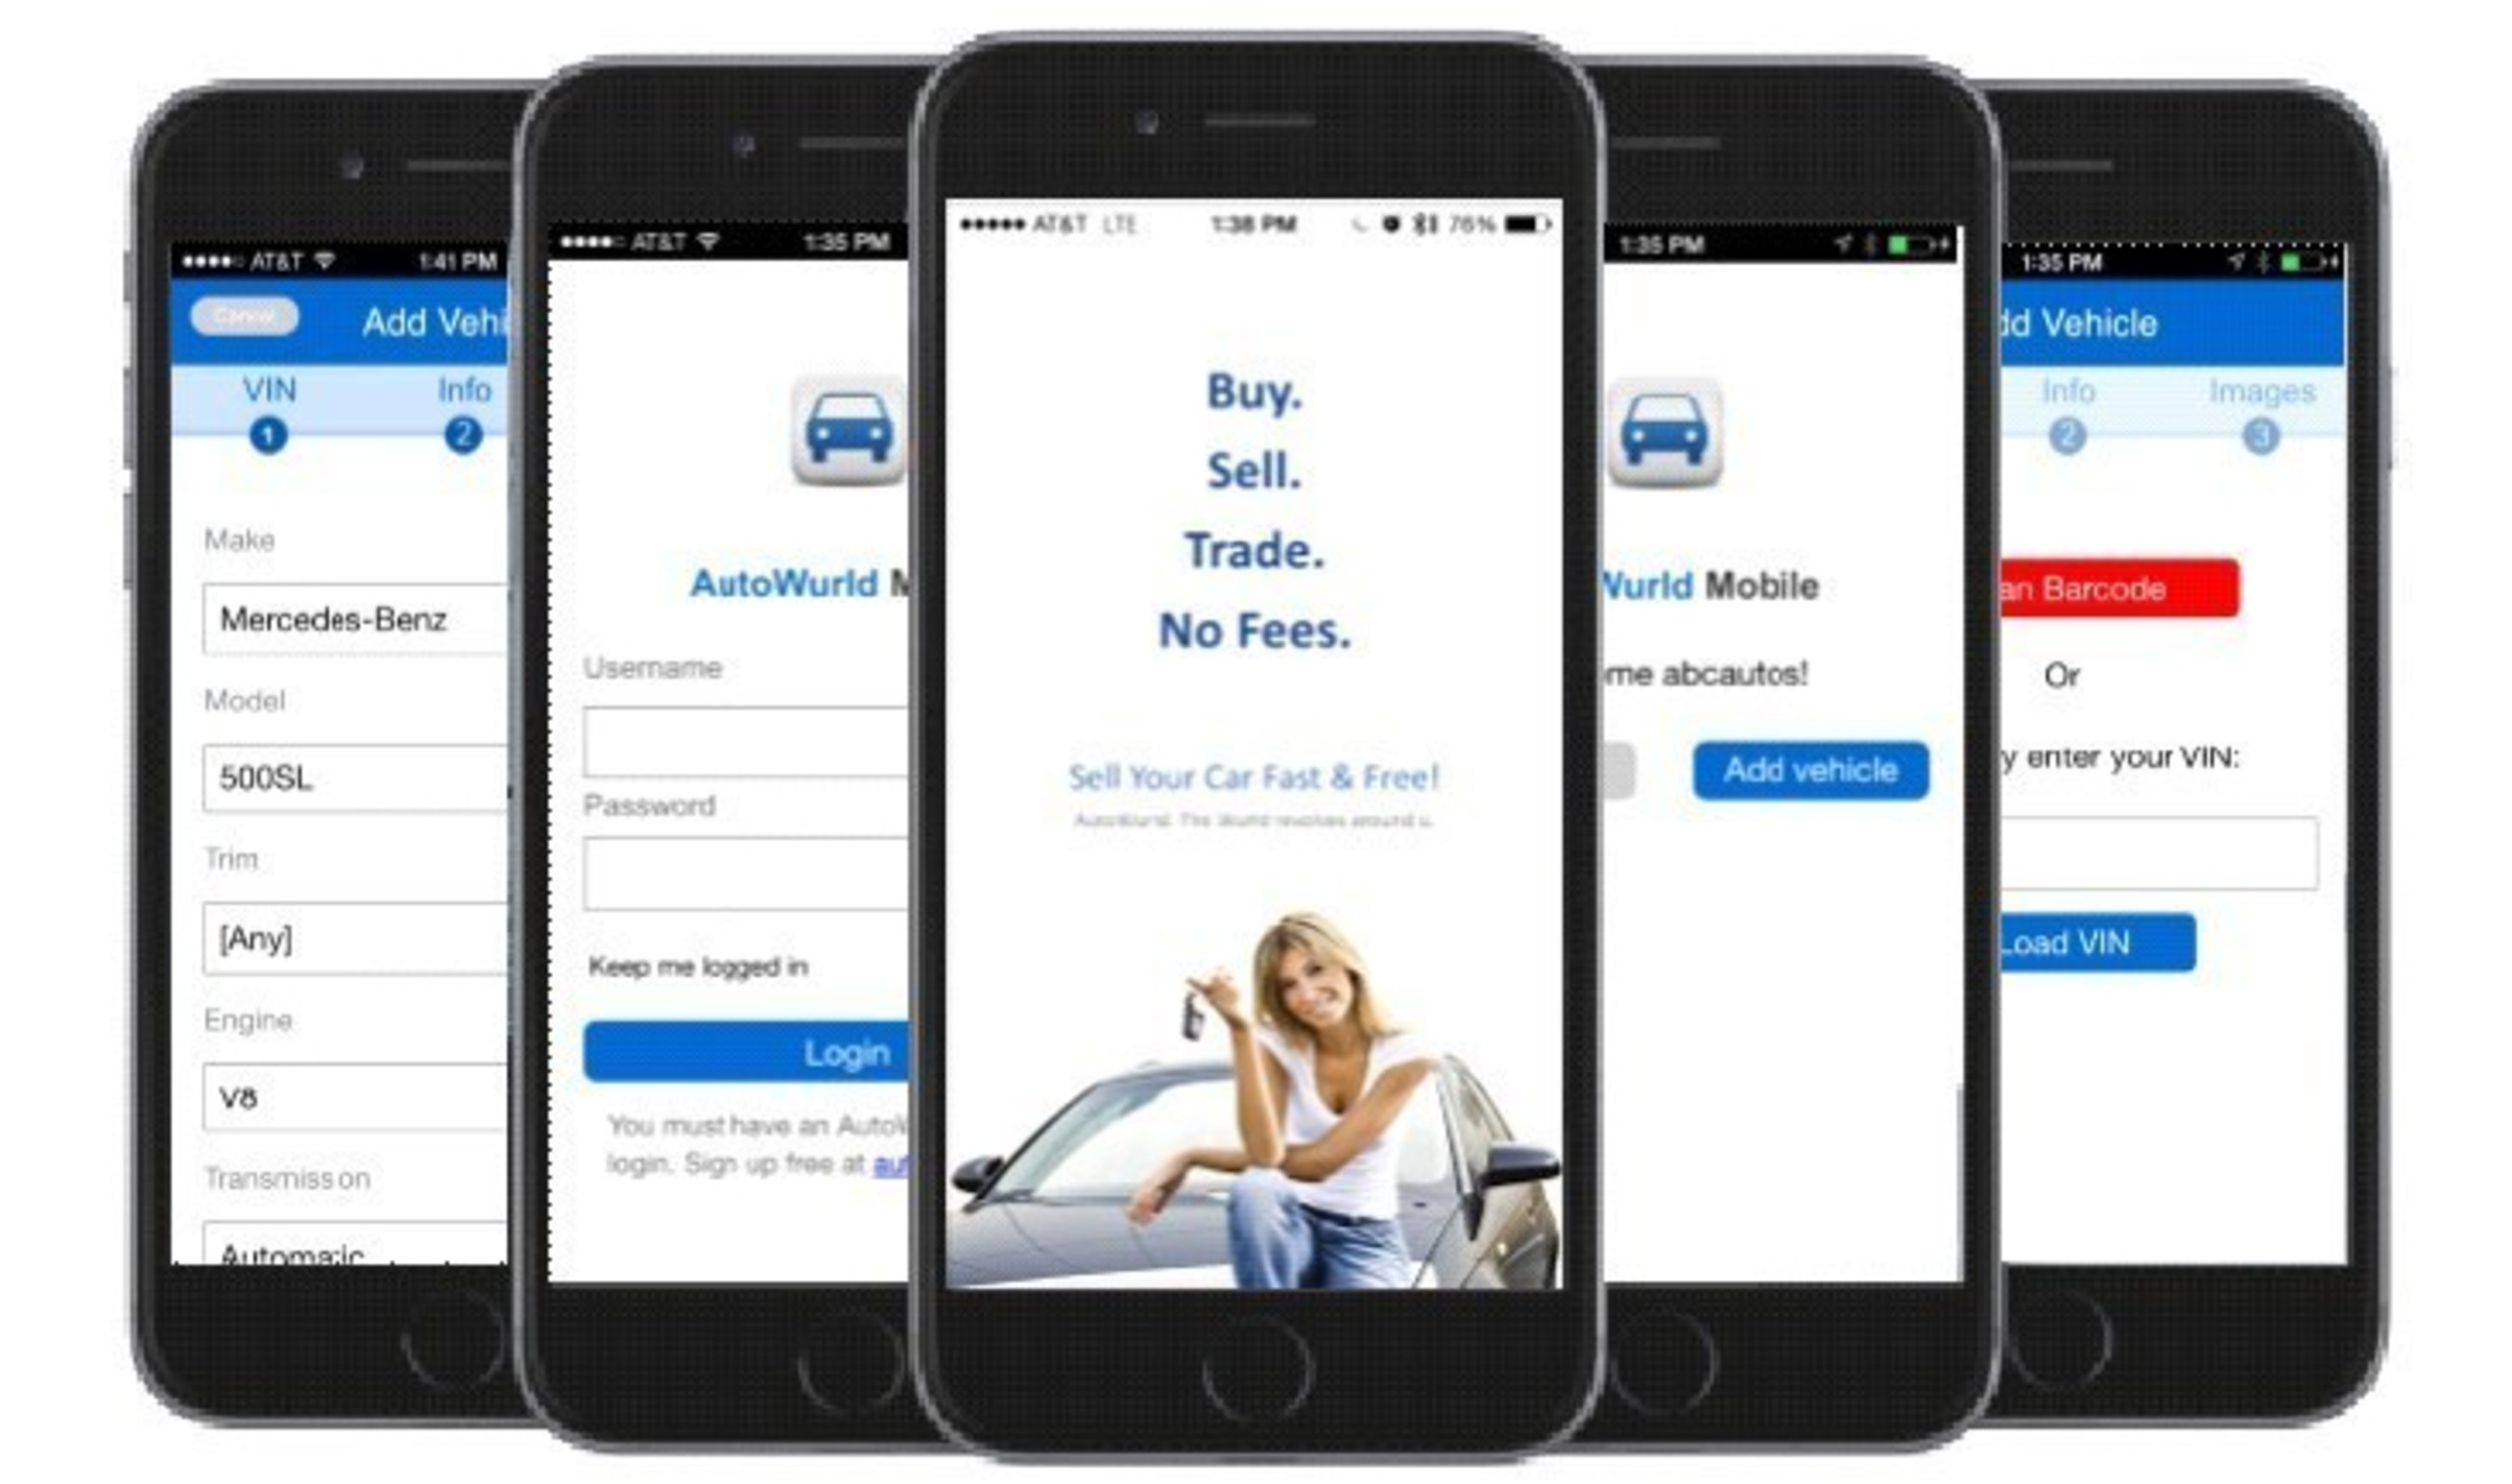 AutoWurld Launches Free Mobile Service to Sell Used Cars